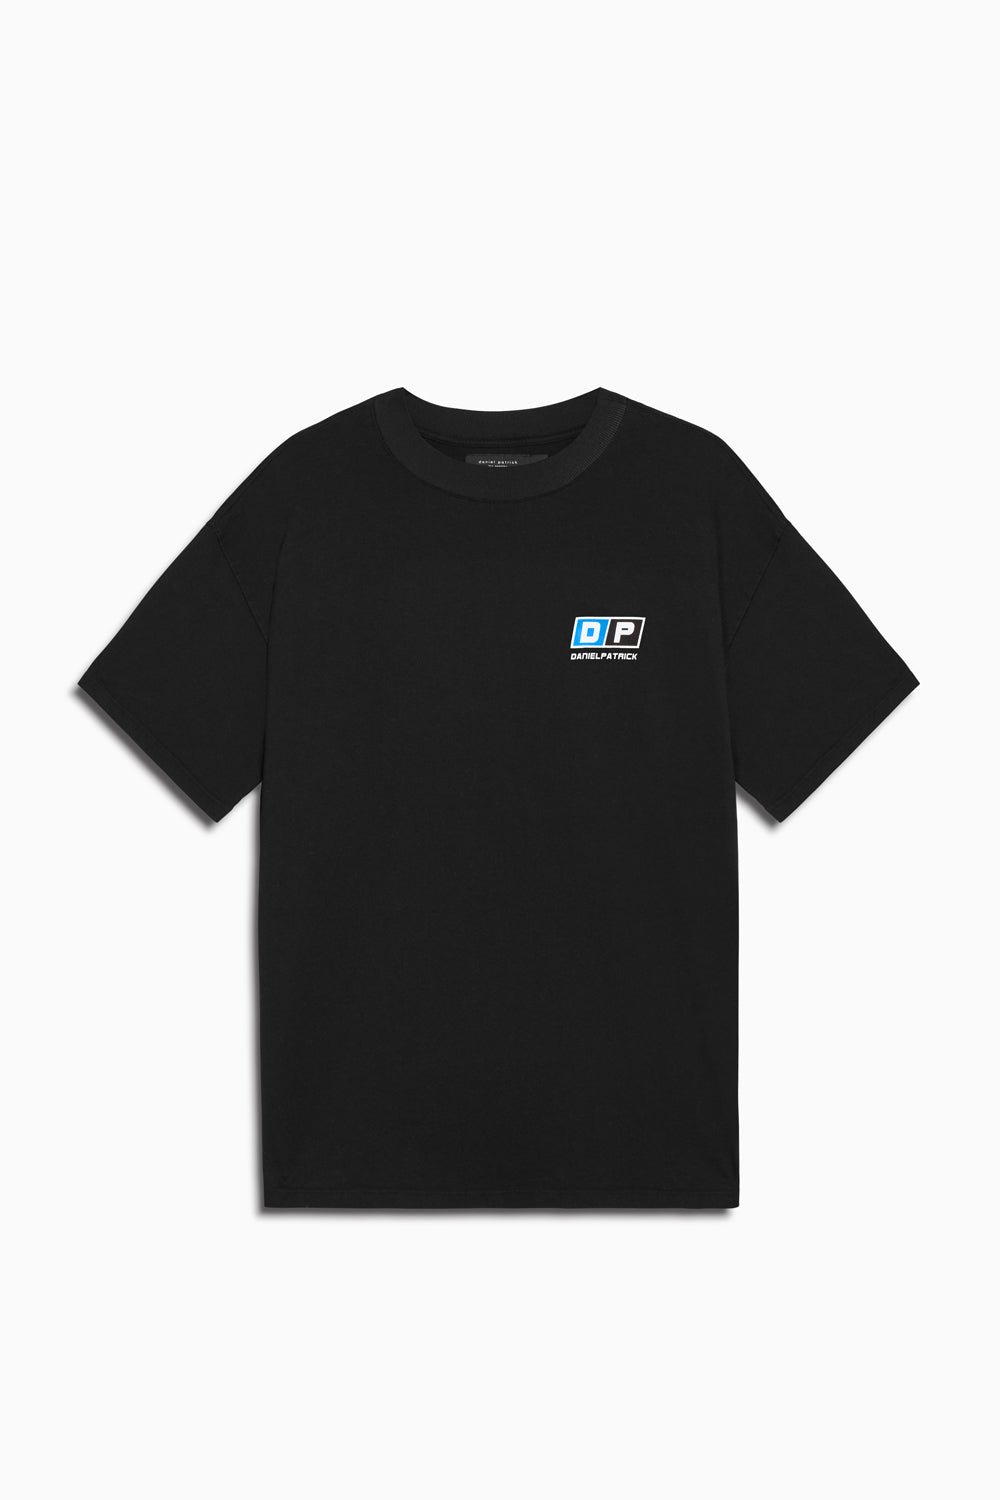 motorsport tee in black/cobalt by daniel patrick